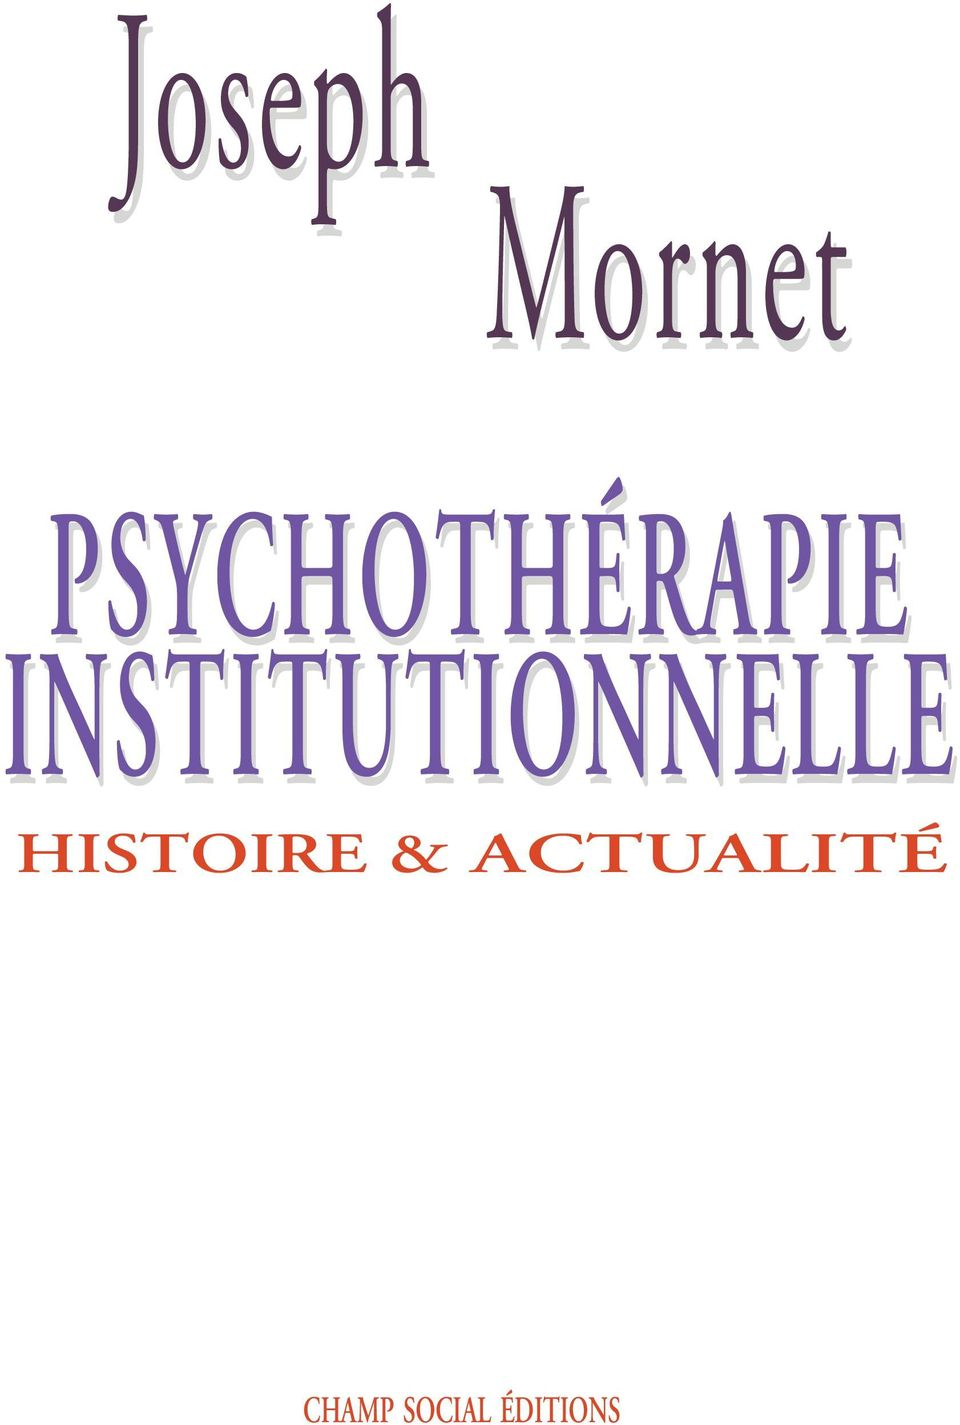 INSTITUTIONNELLE